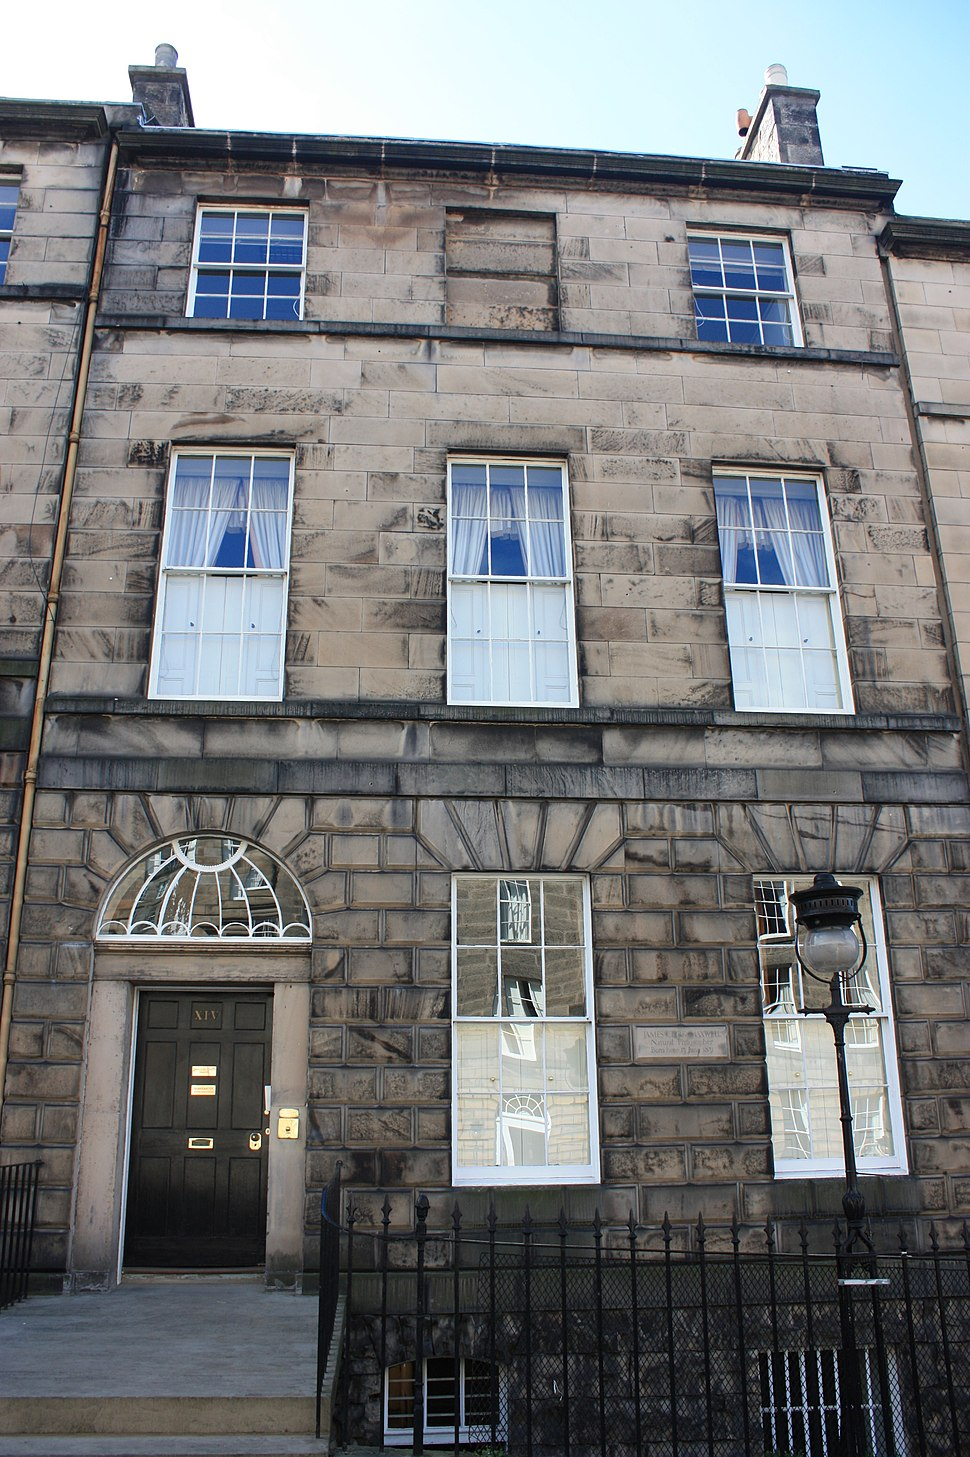 James Clerk Maxwell's birthplace at 14 India Street